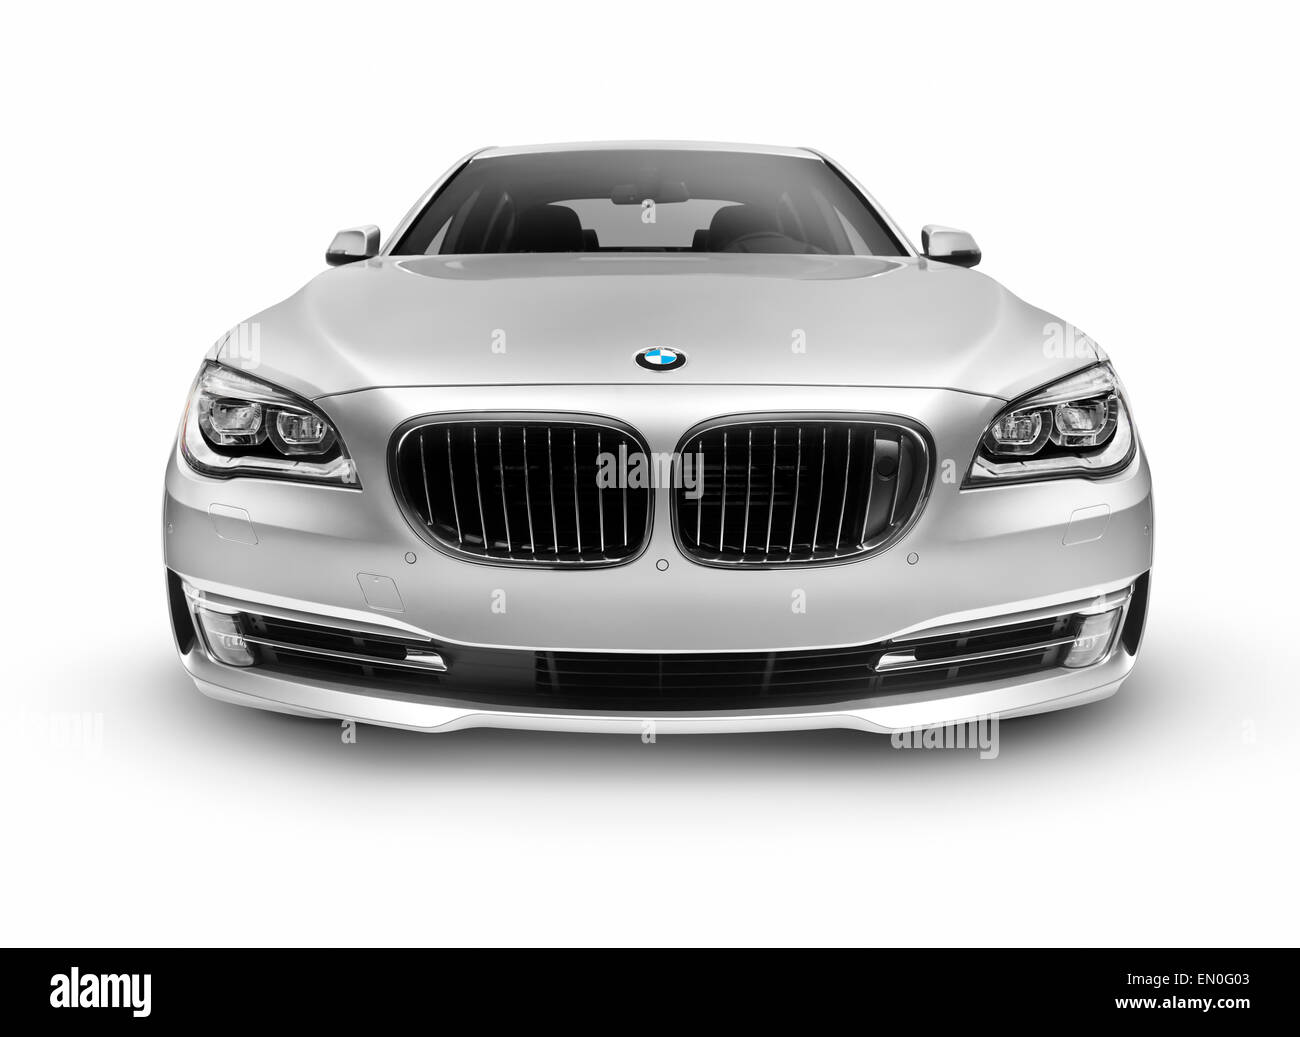 Silver 2015 Bmw 7 Series 750li Individual Luxury Car Front View